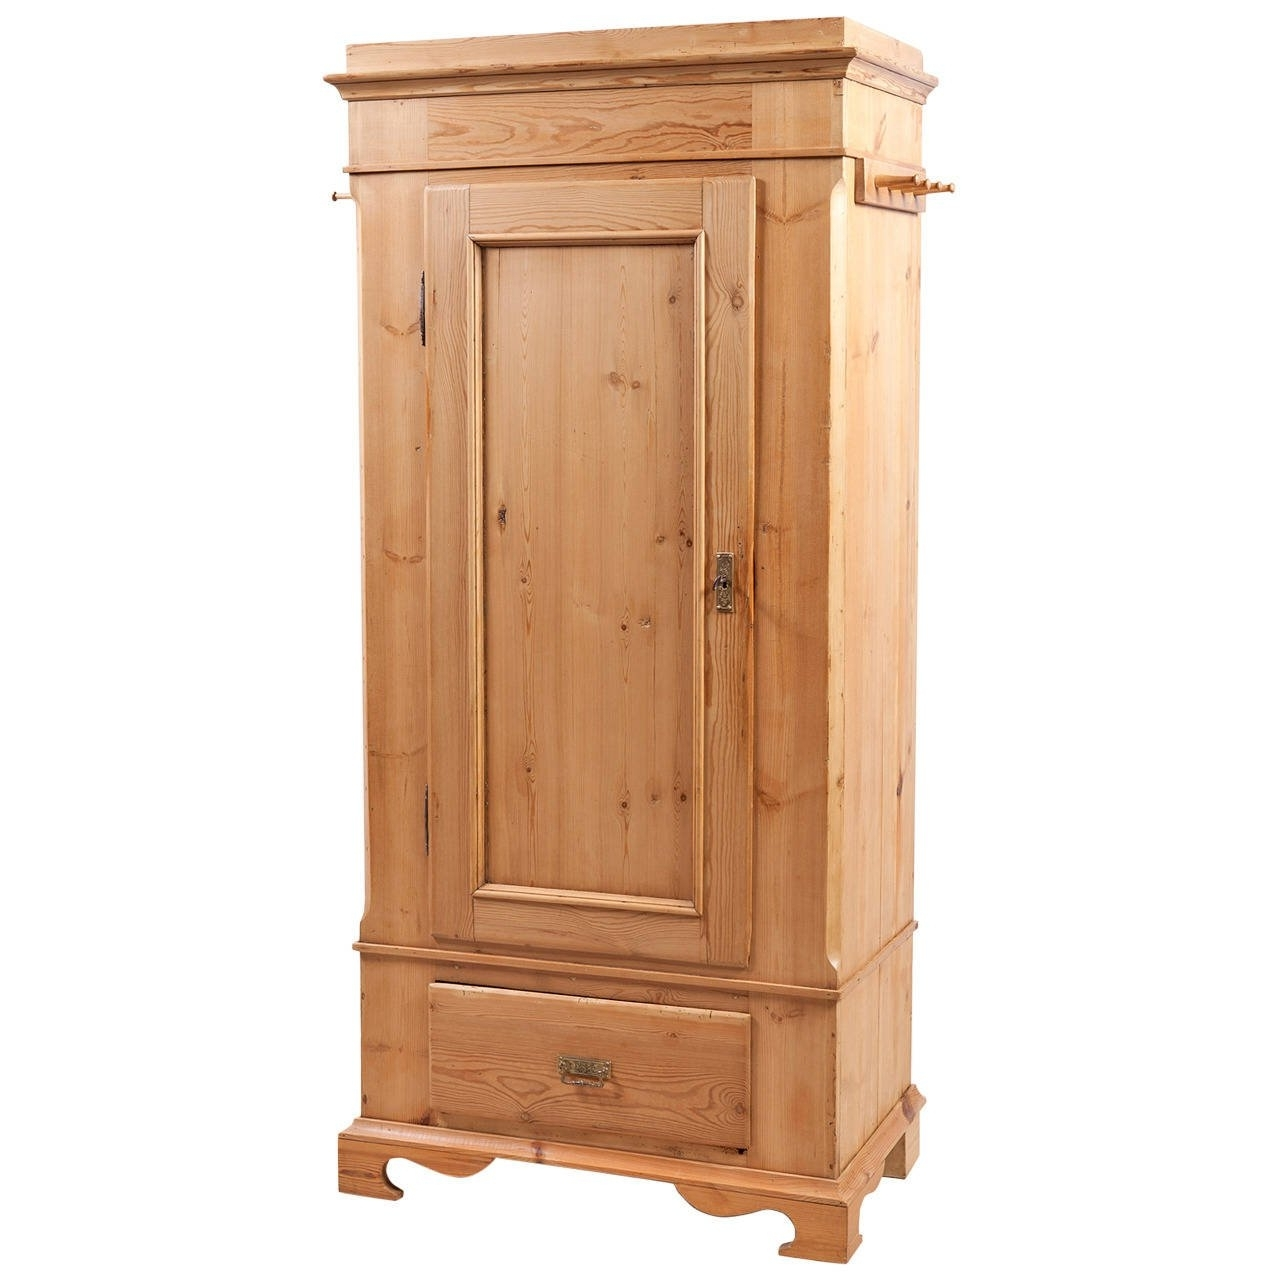 Popular Single Door Pine Wardrobes Intended For Single Door Danish Wardrobe Armoire In Pine, Circa 1845 At 1Stdibs (View 8 of 15)